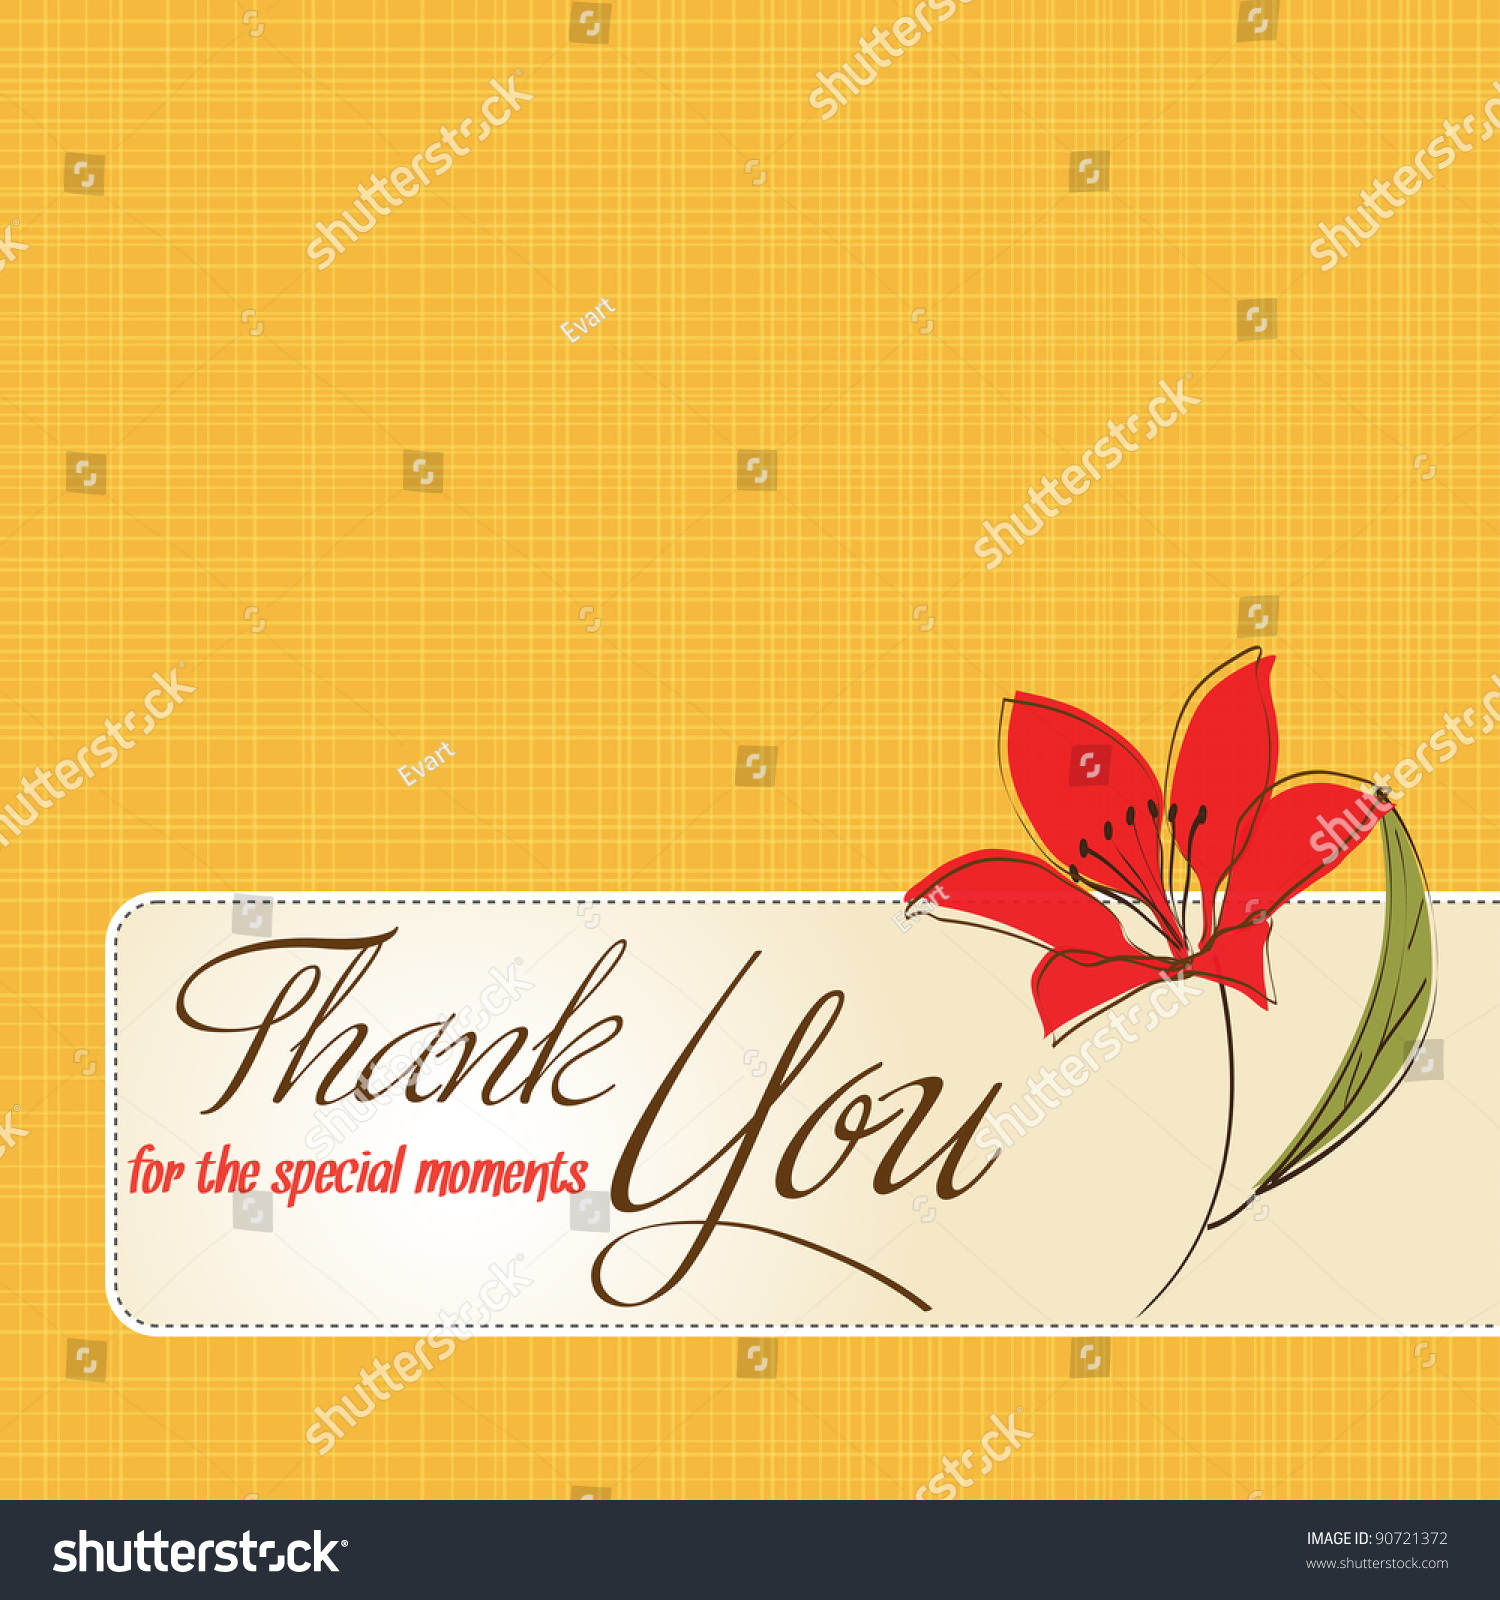 Thank you greeting card flower stock vector 90721372 shutterstock thank you greeting card with flower kristyandbryce Choice Image